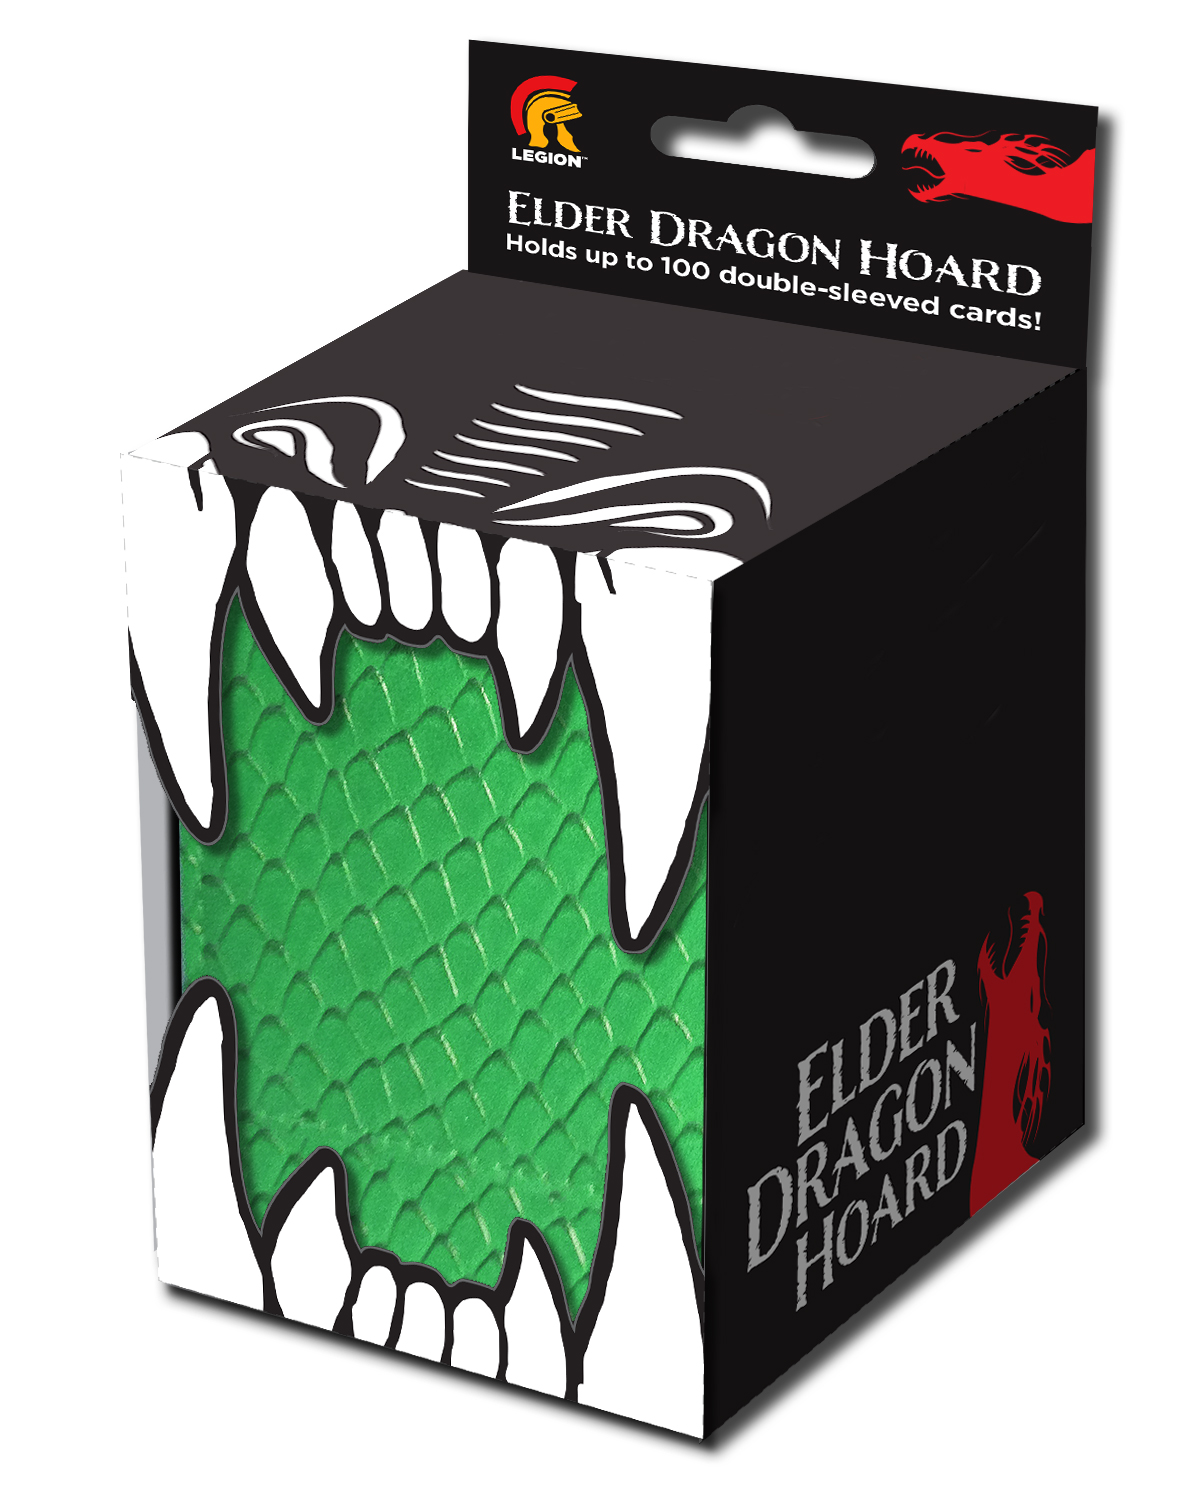 Hoard - Dragon Hide Green